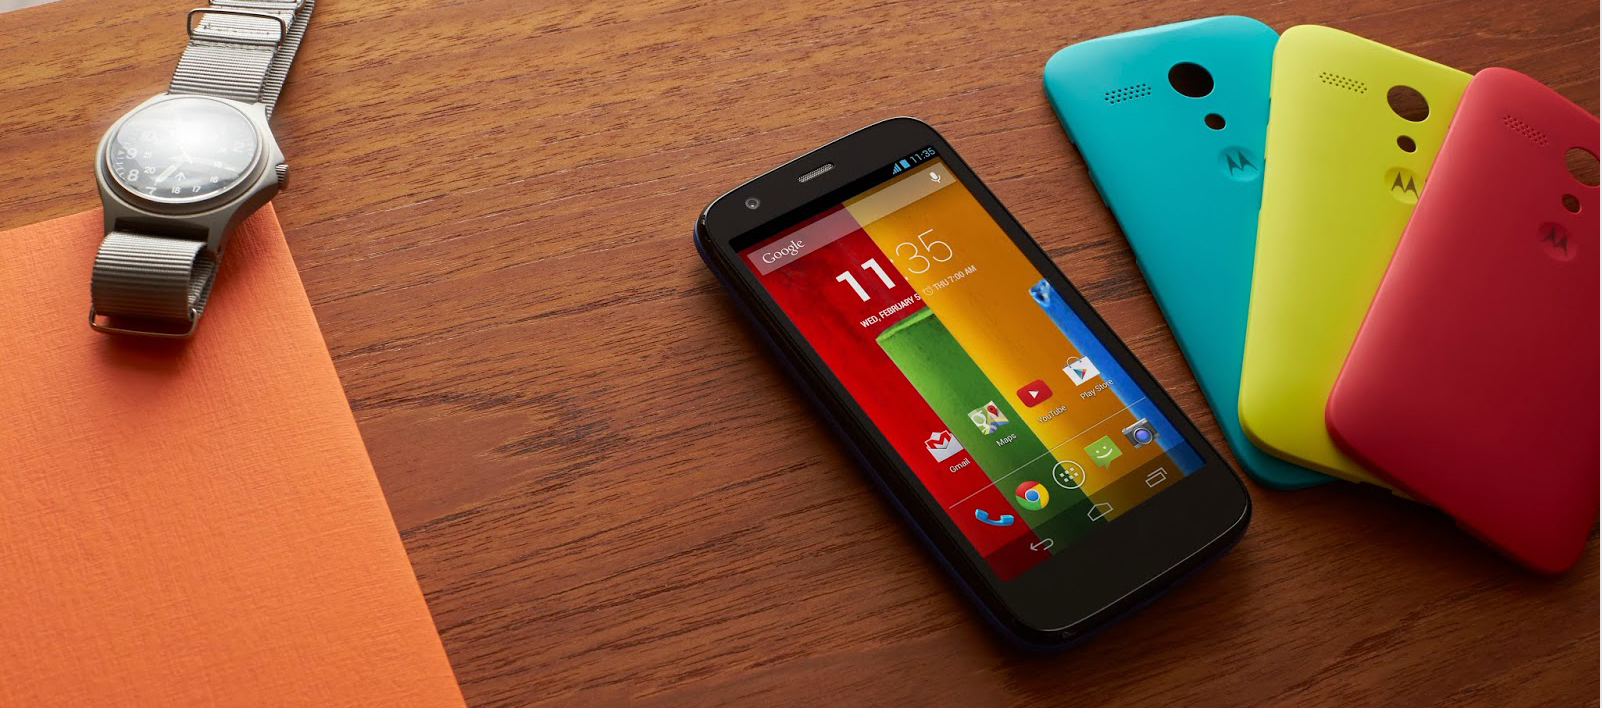 moto-g-press-widescreen